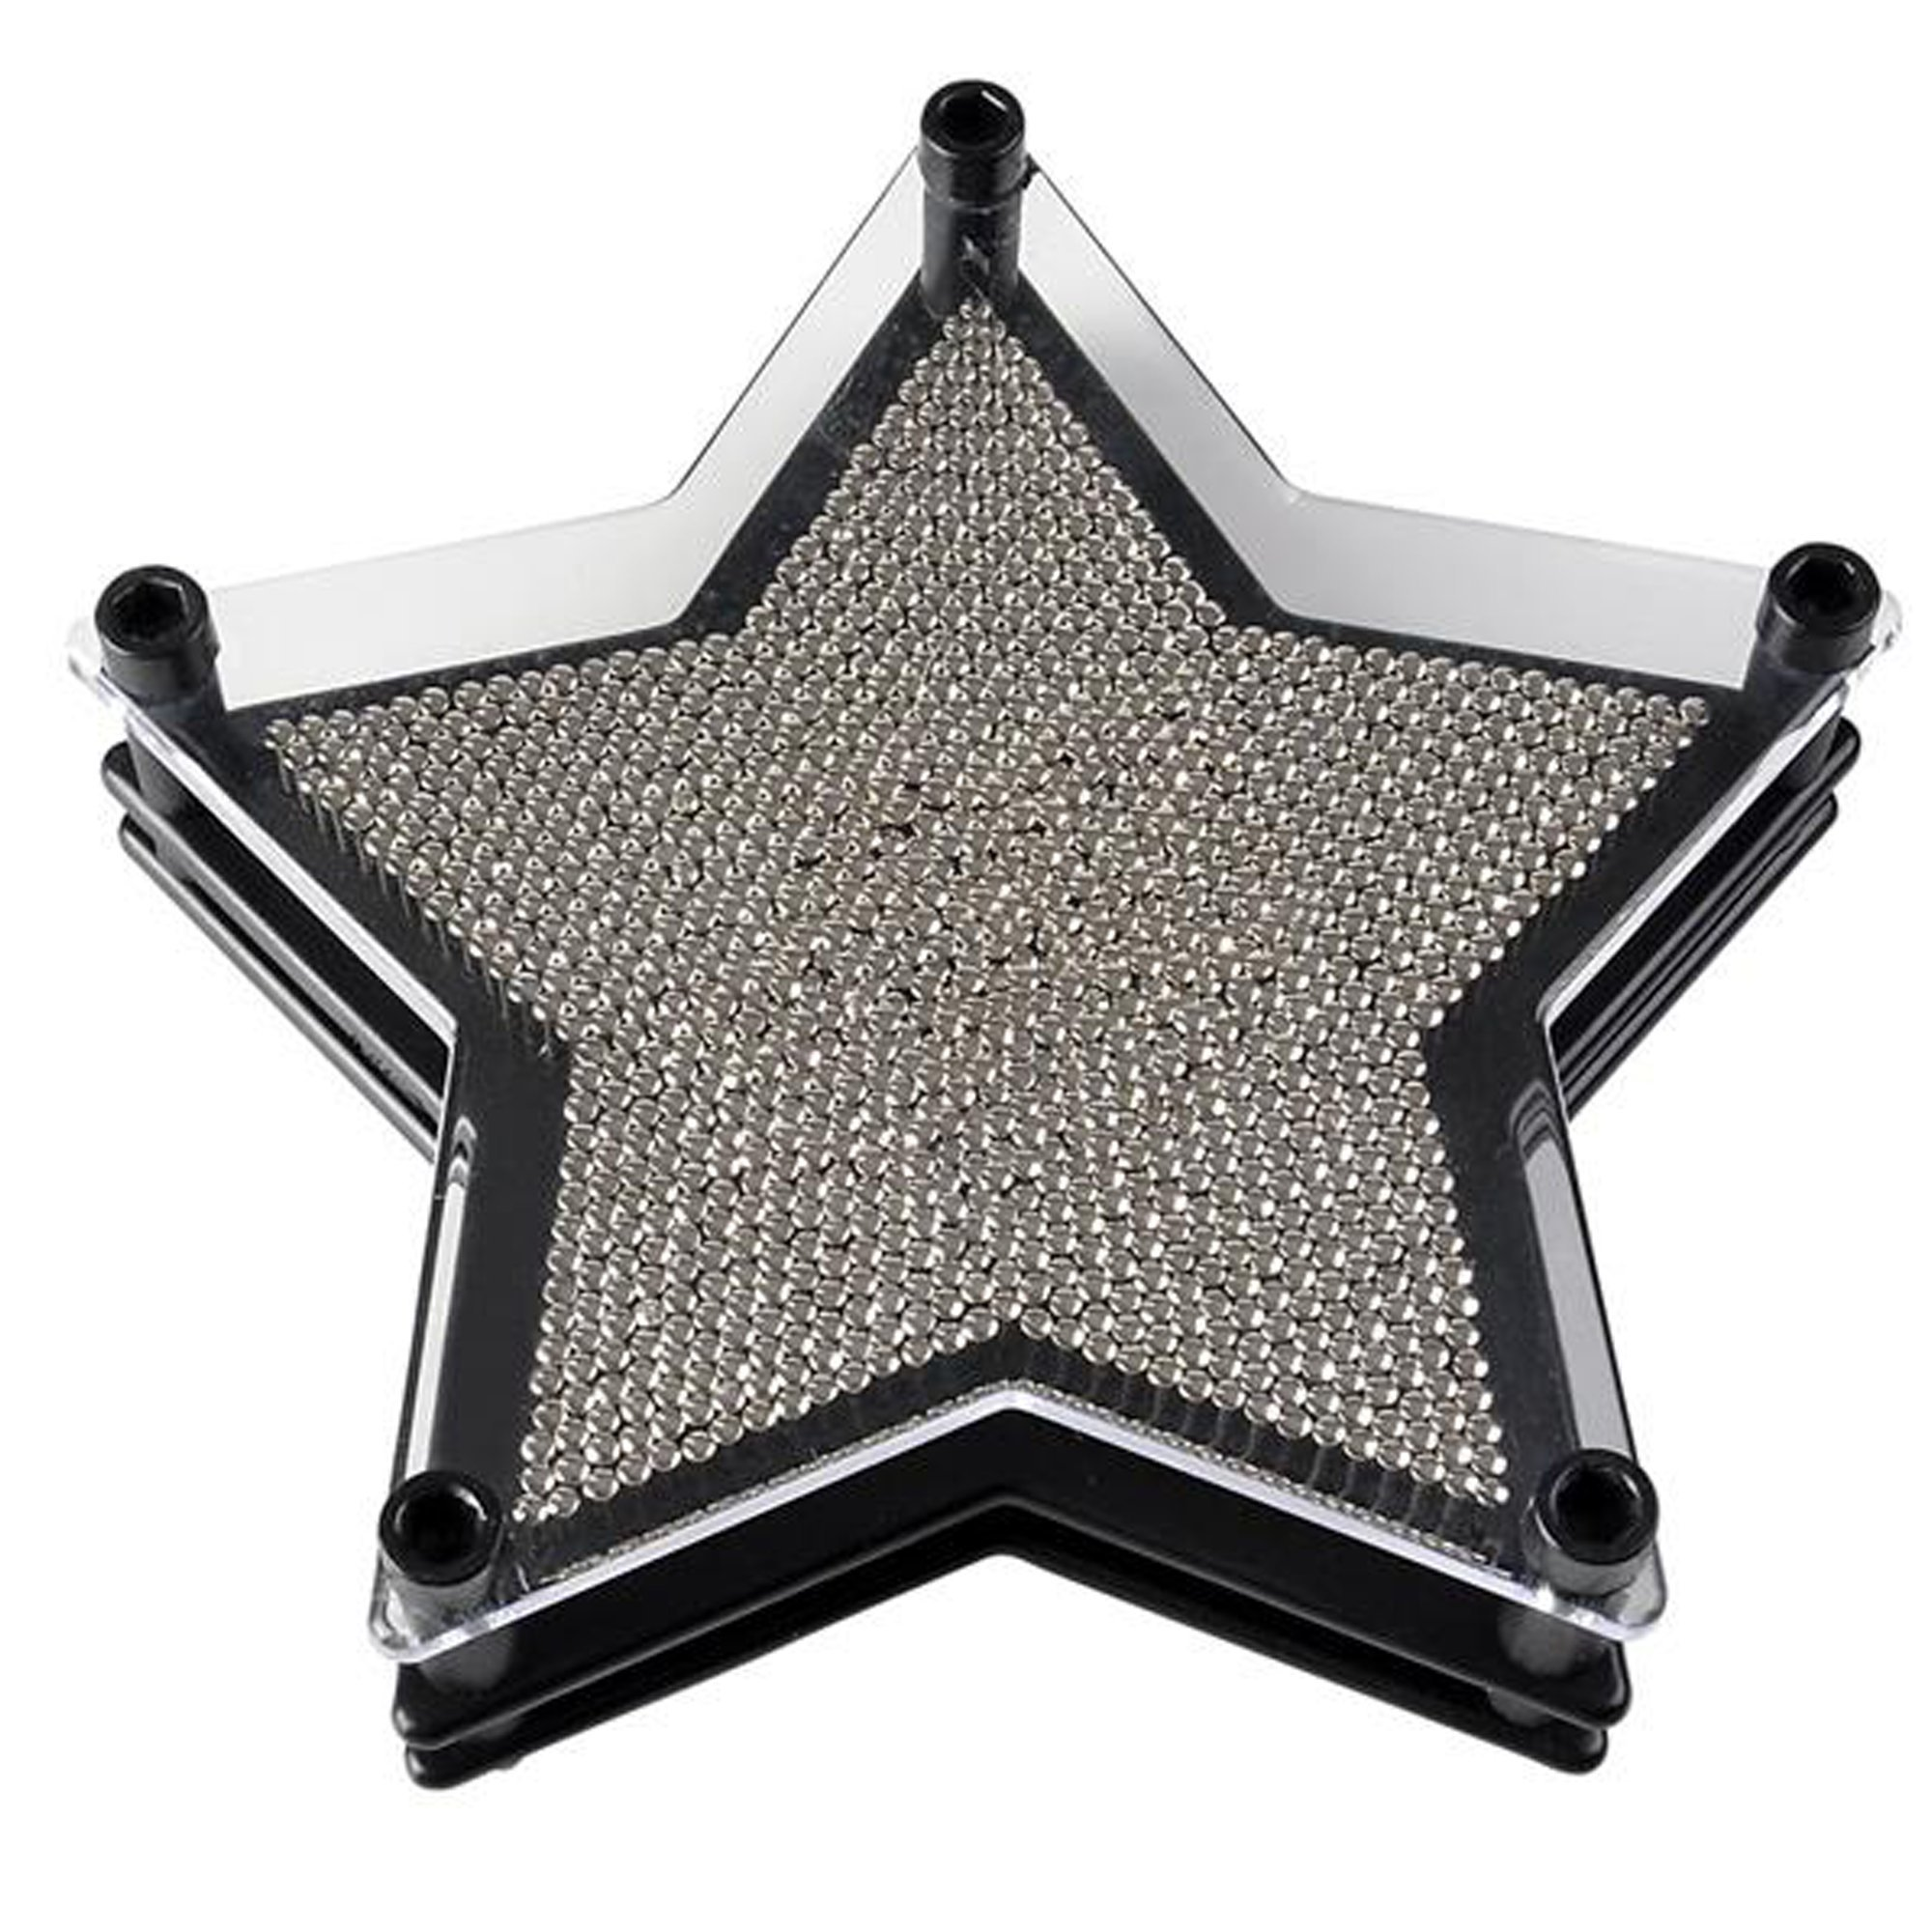 "ArtCreativity 6"" Star Pin Art Game for Kids or Adults Pin Art Toy for Autistic Kids-Stainless Steel Metal Pins, Sturdy Plastic Frame-Great Party Favor/Gift for Boys-Girls/Office Desk Decoration"